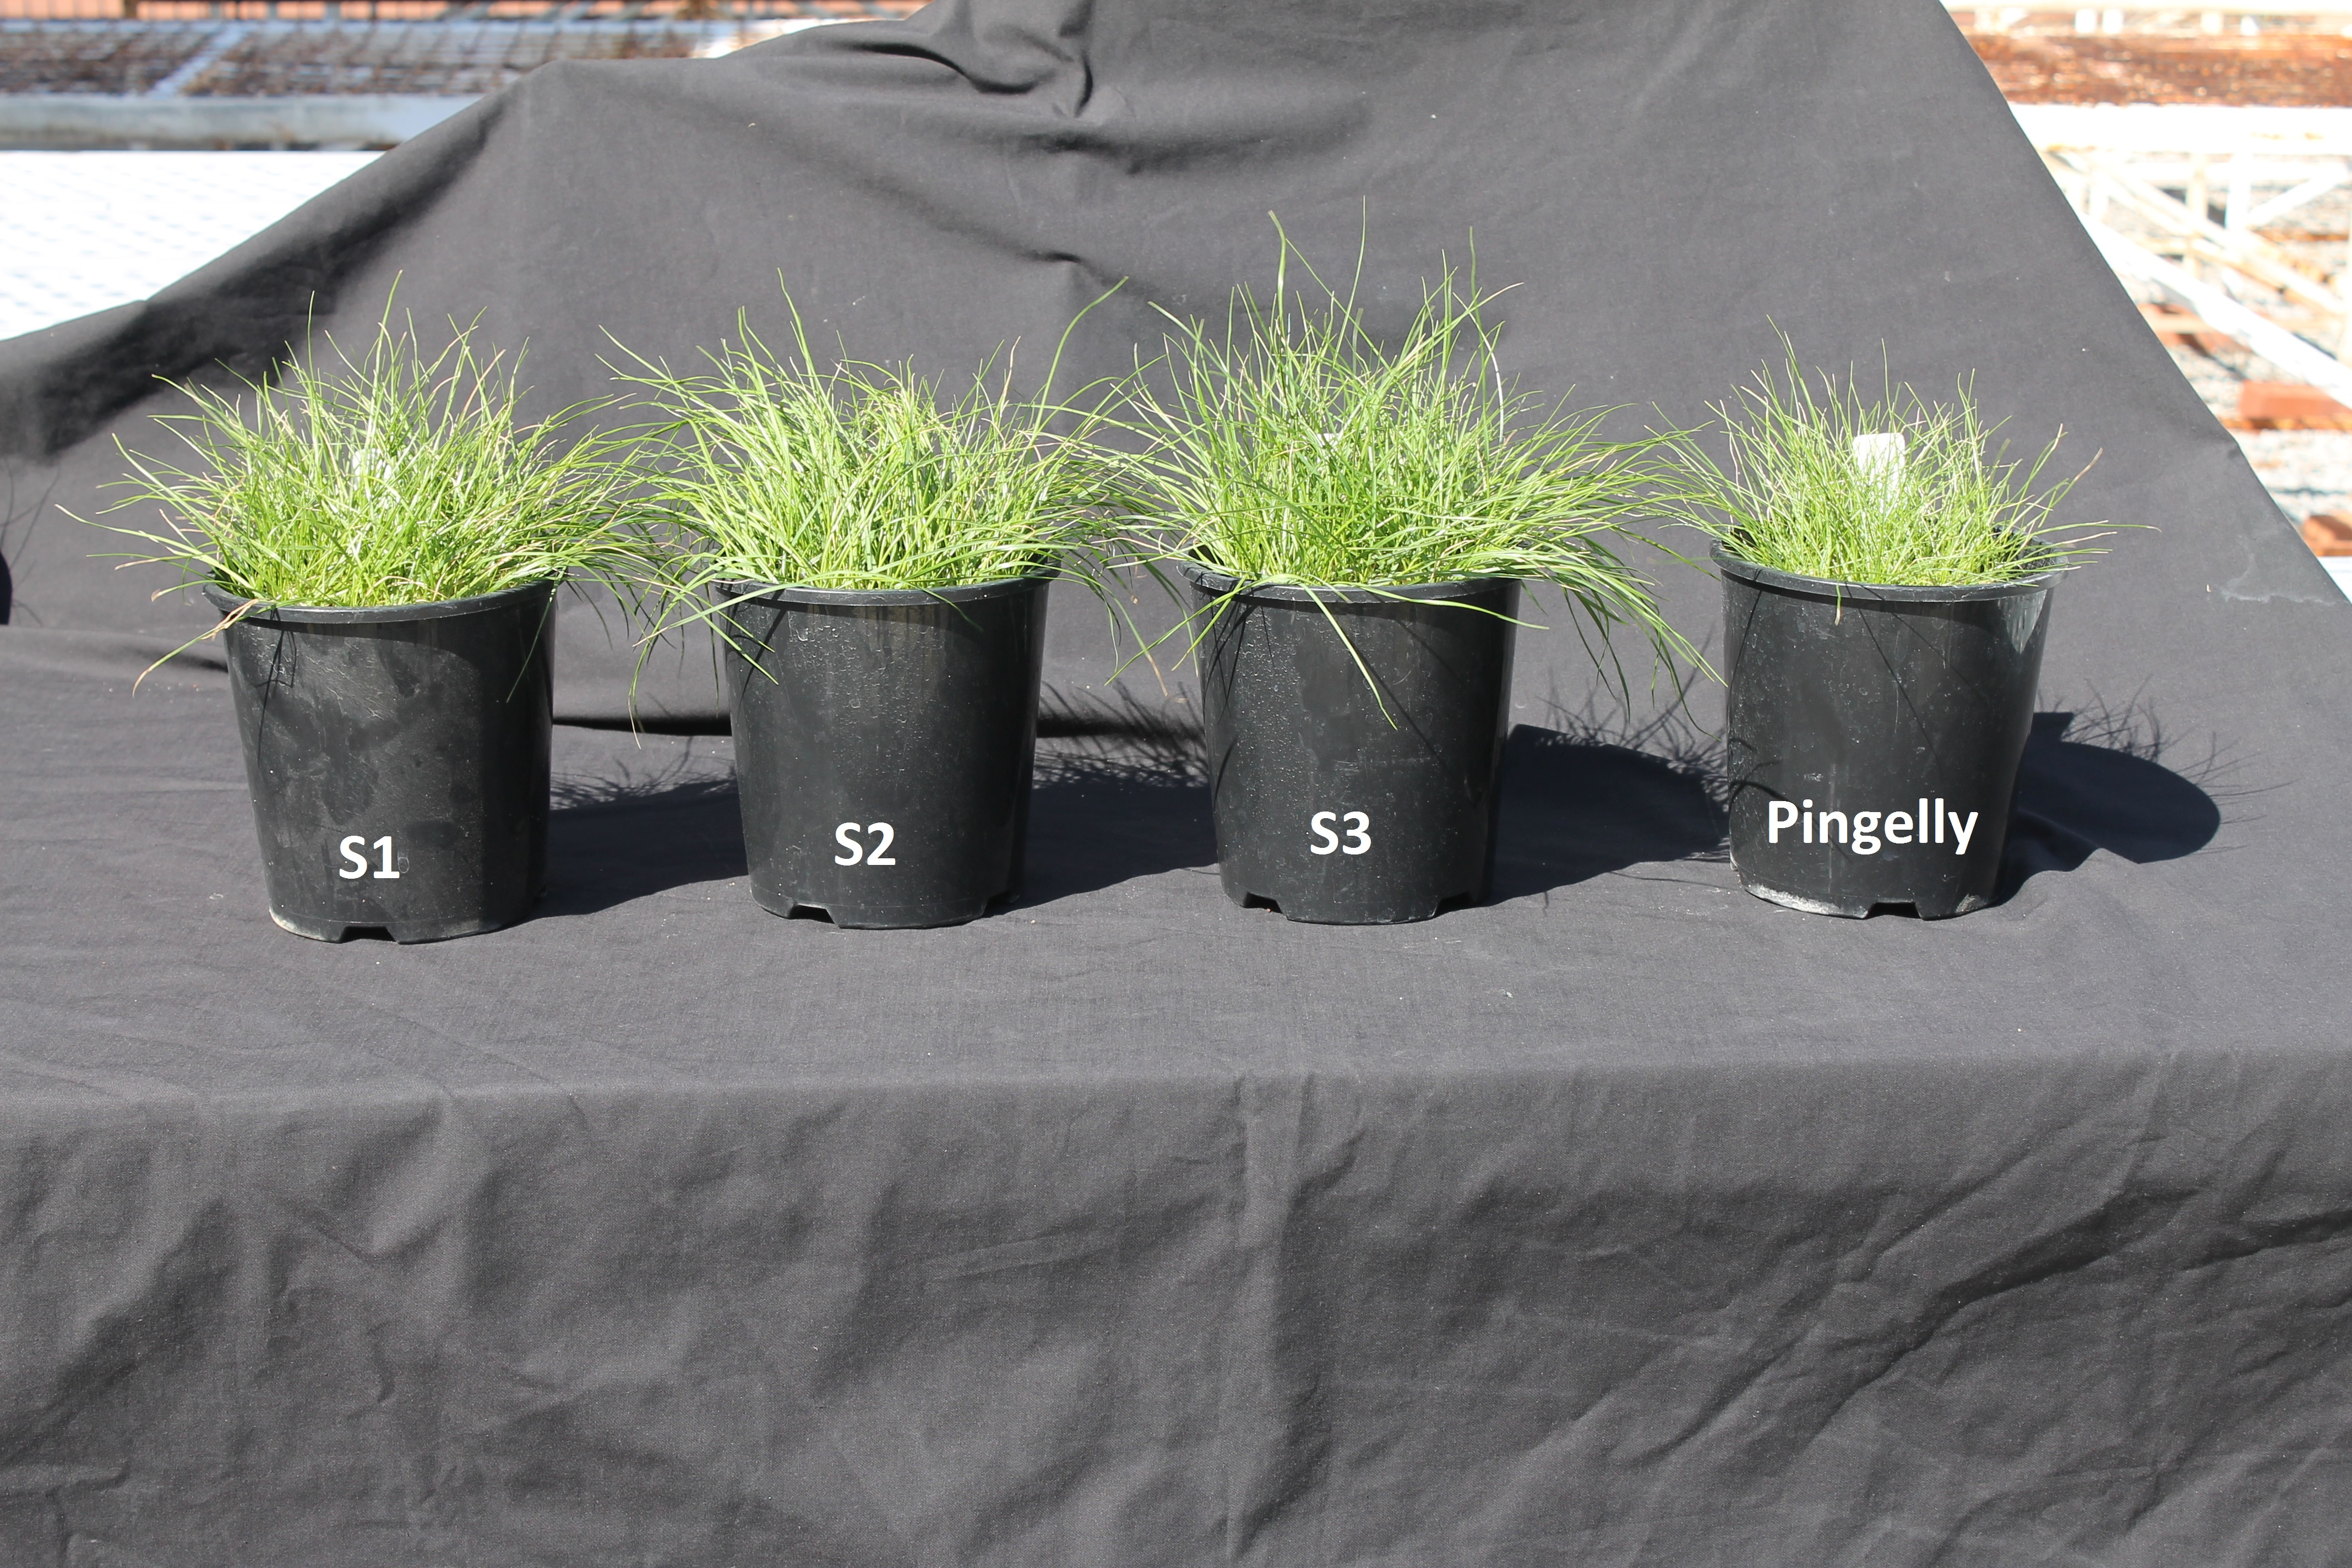 Figure 3. Reduced biomass of untreated simazine resistant population (Pingelly) compared to three known susceptible populations of silver grass.